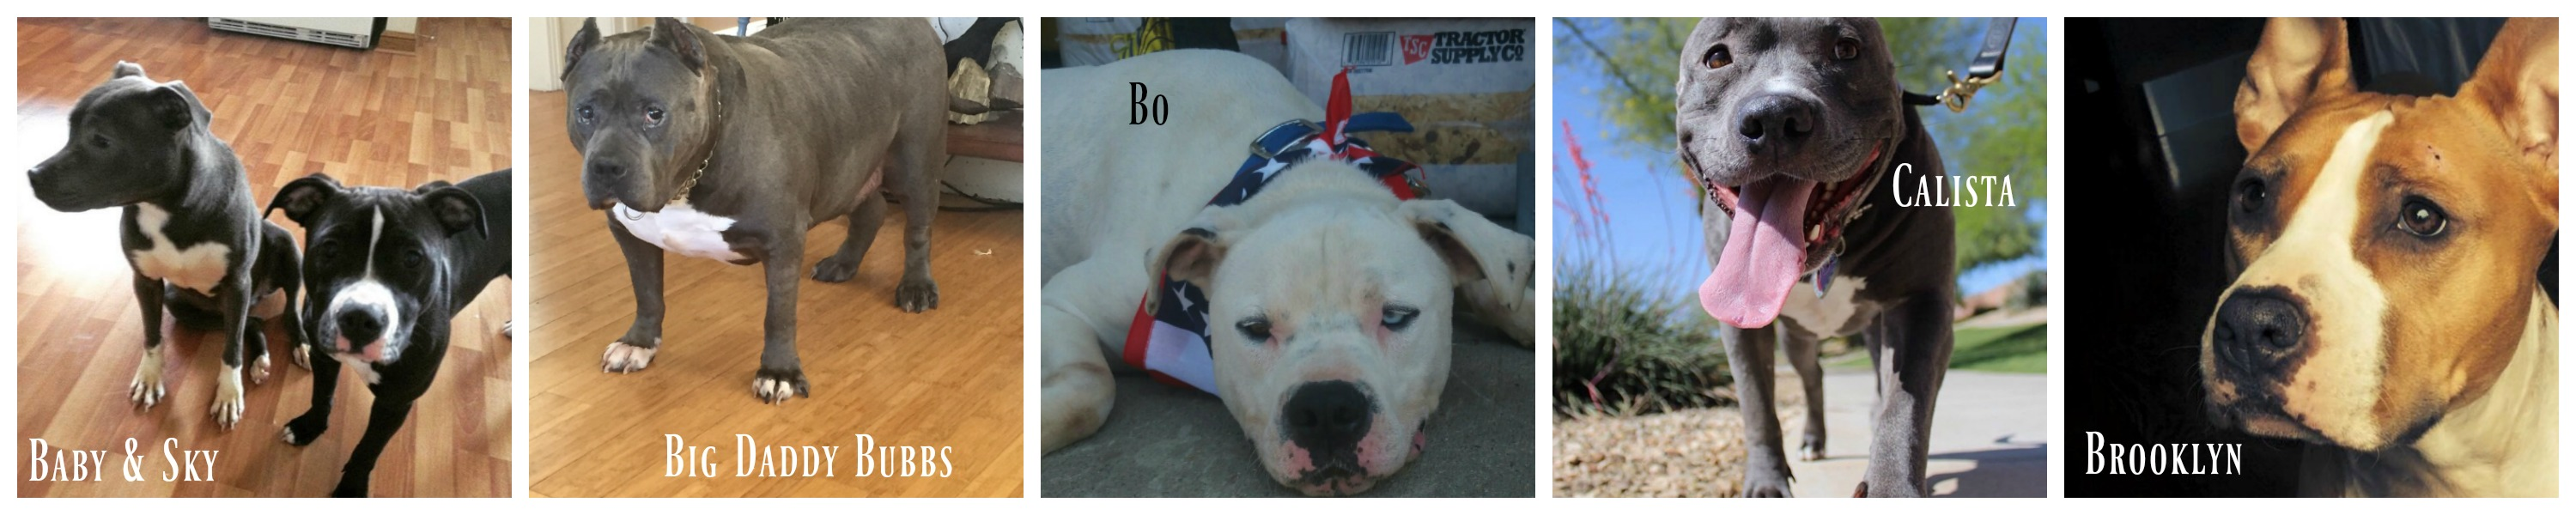 pbo-dogs-2